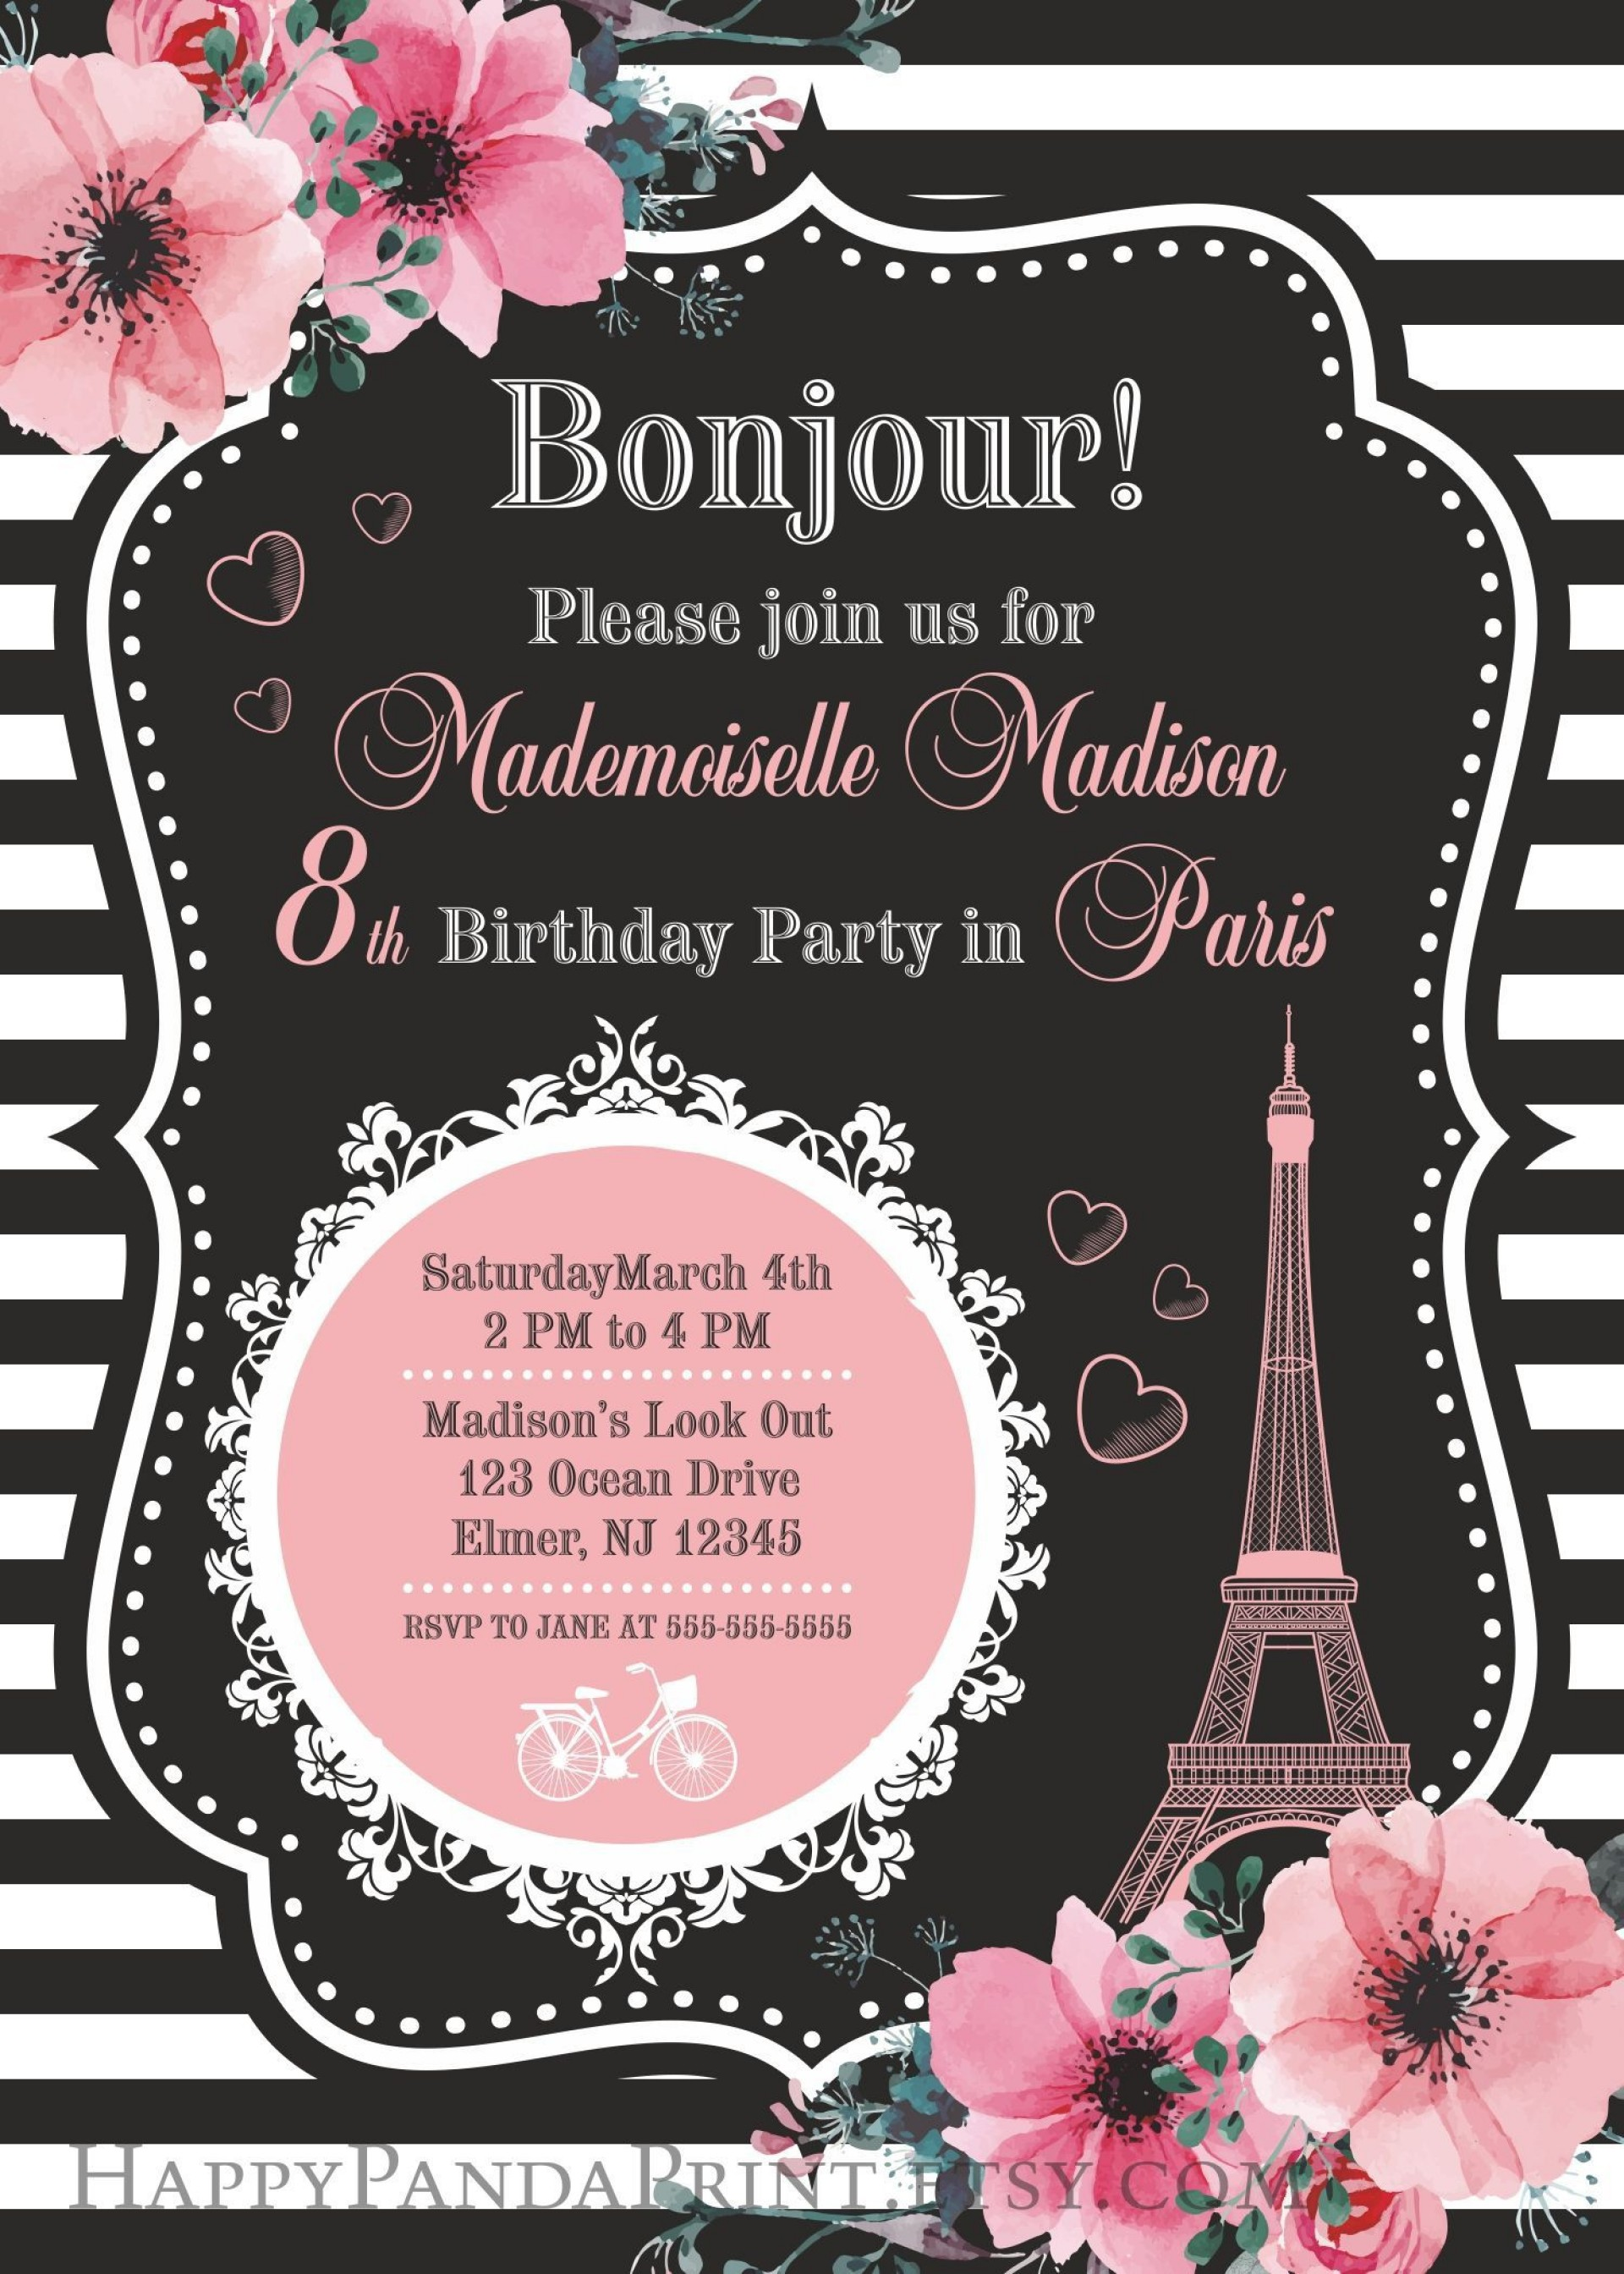 003 Stunning Free Pari Birthday Party Invitation Template Highest Clarity  Templates1920